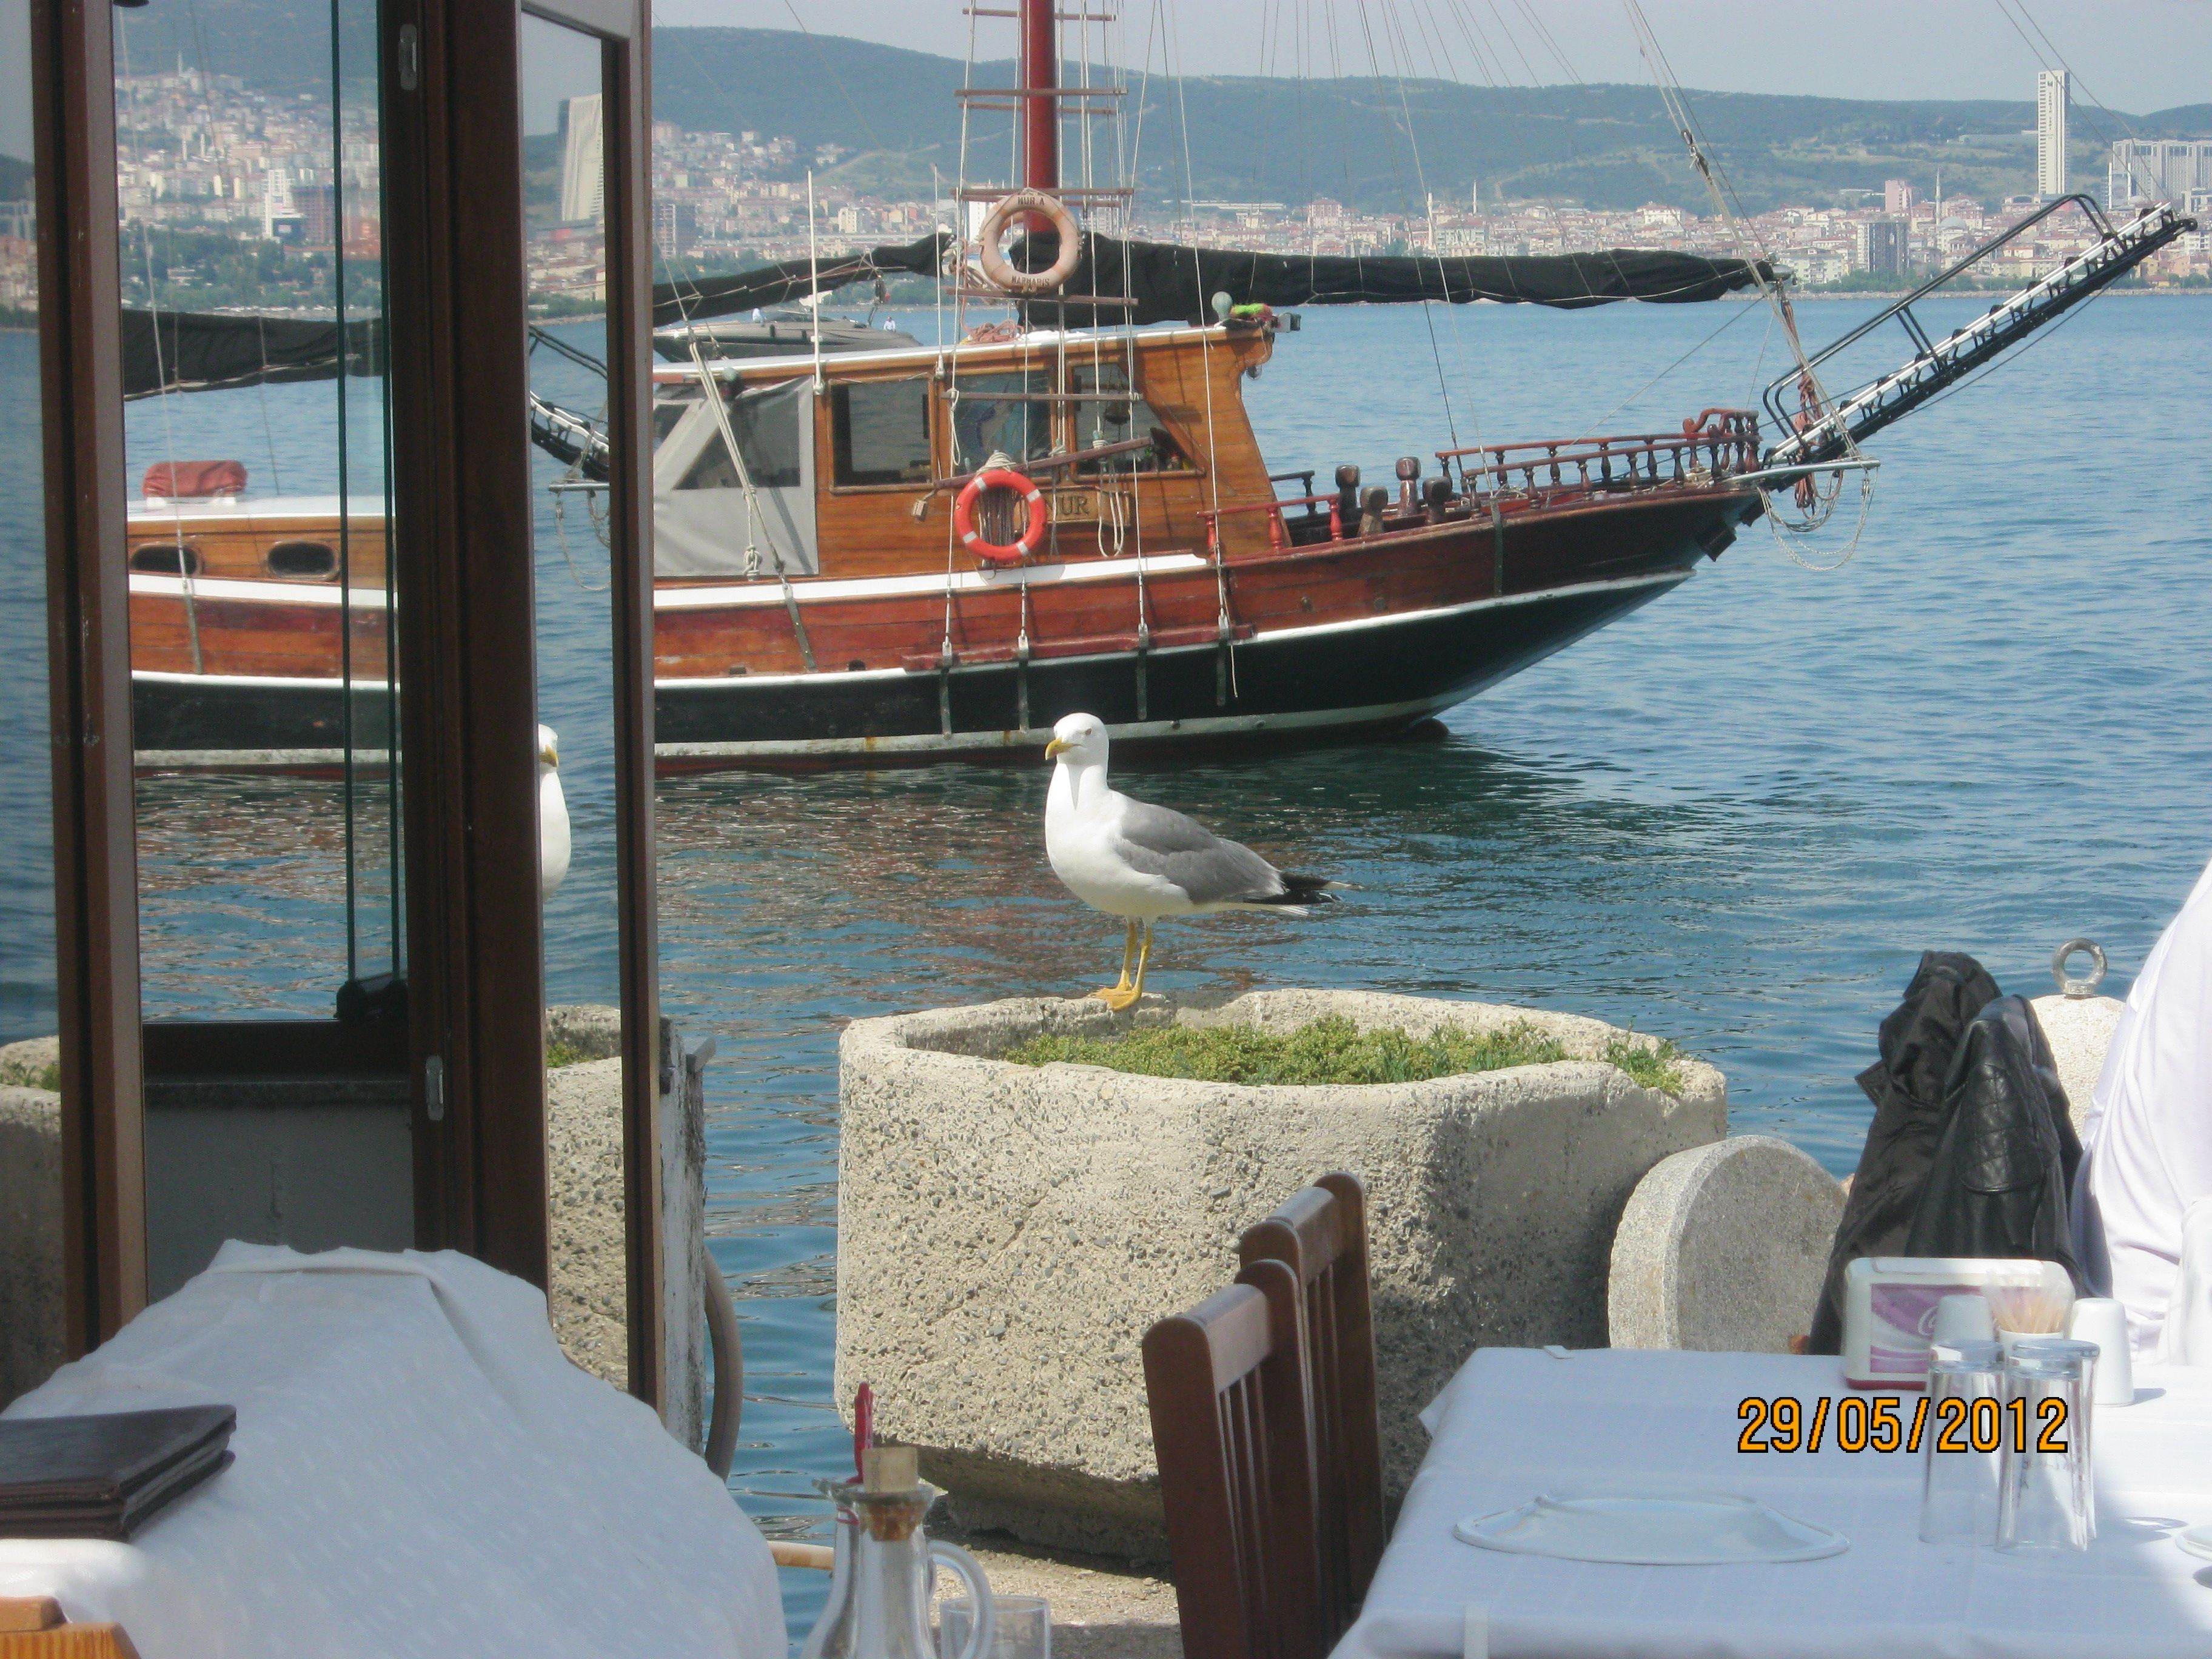 The sail boat and the cute seagull :))